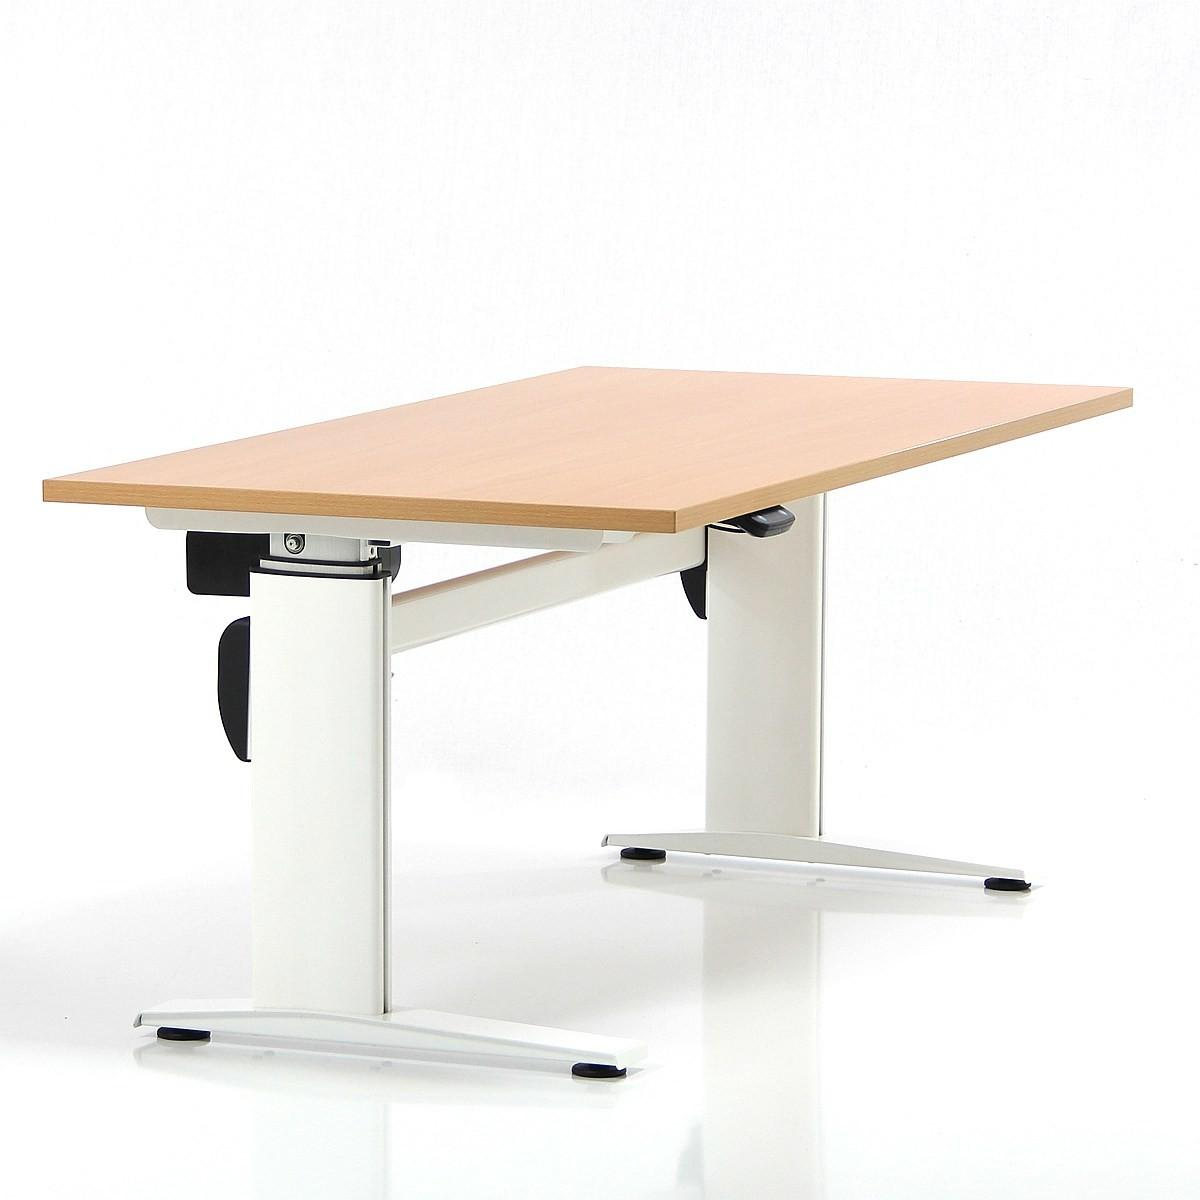 Rustic Varnished Wooden Stand Working Desk Well